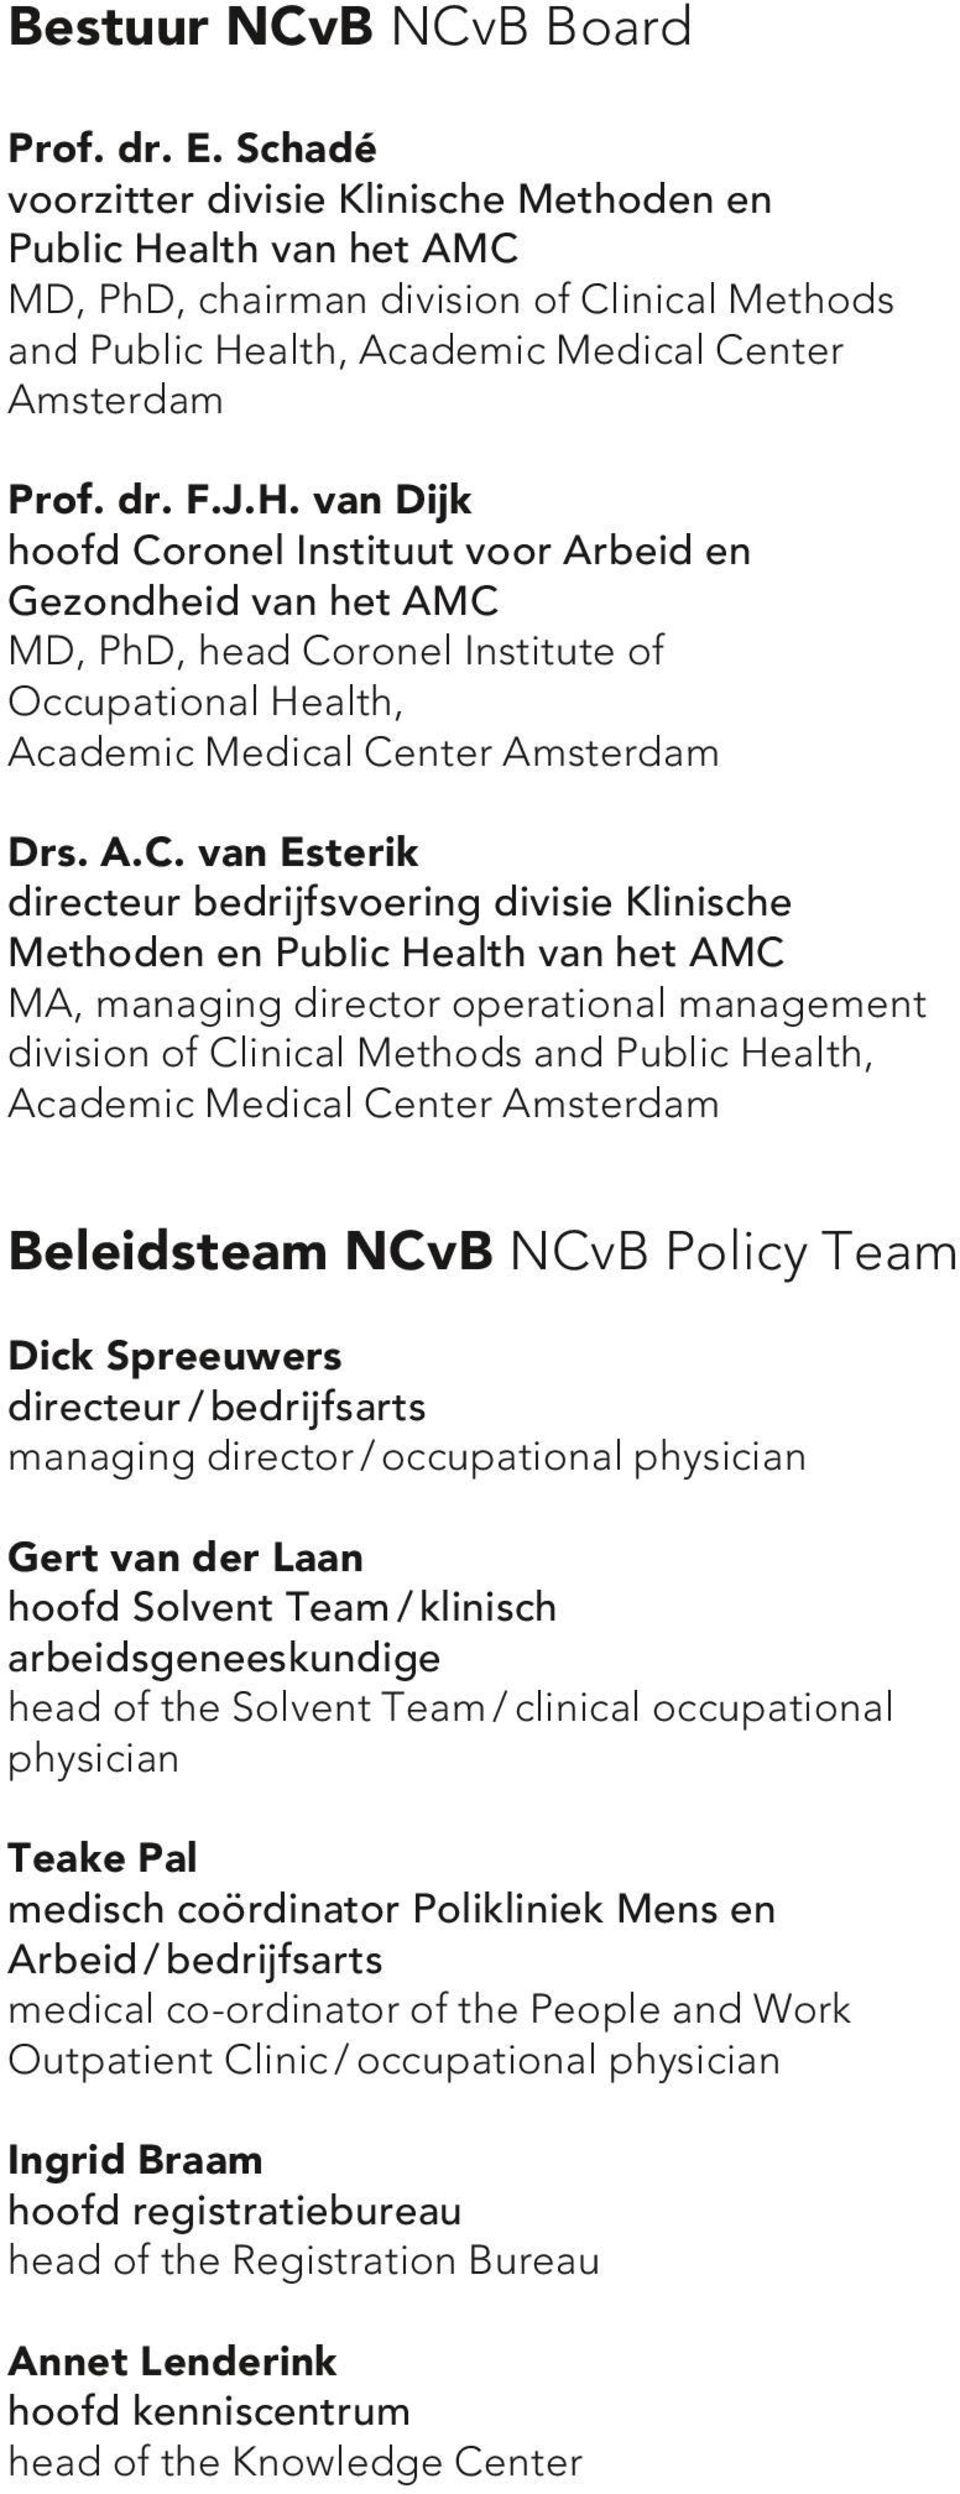 alth van het AMC MD, PhD, chairman division of Clinical Methods and Public He